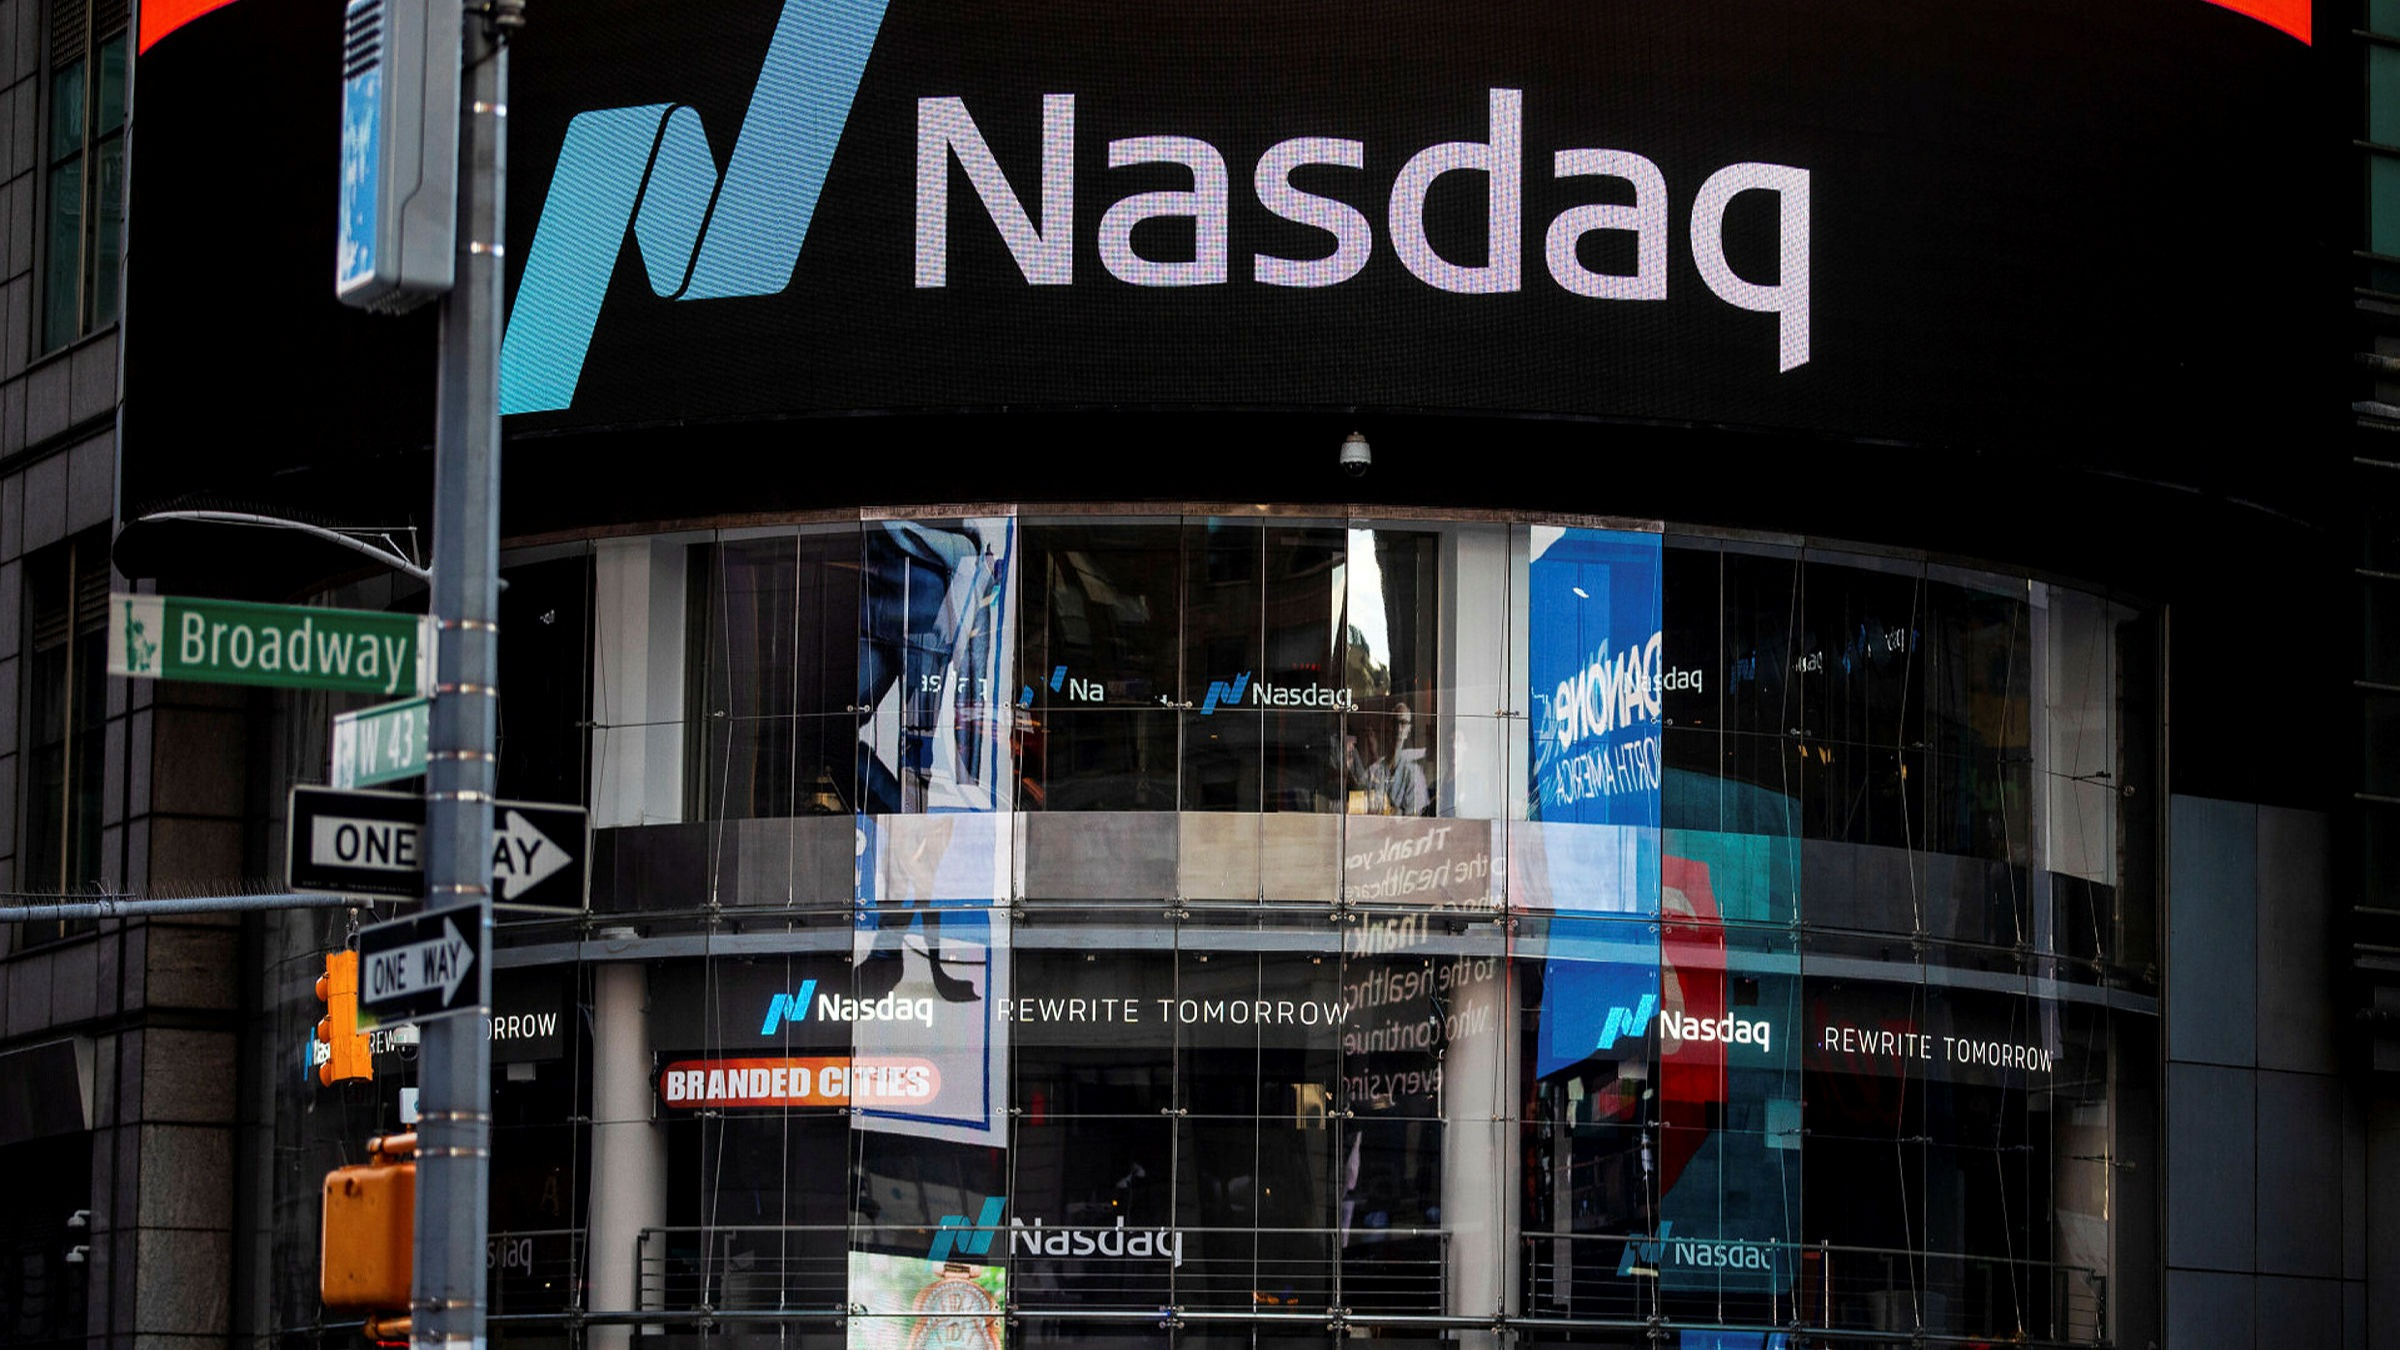 Downbeat' US executives dump most stock in a month since 2015 | Financial  Times